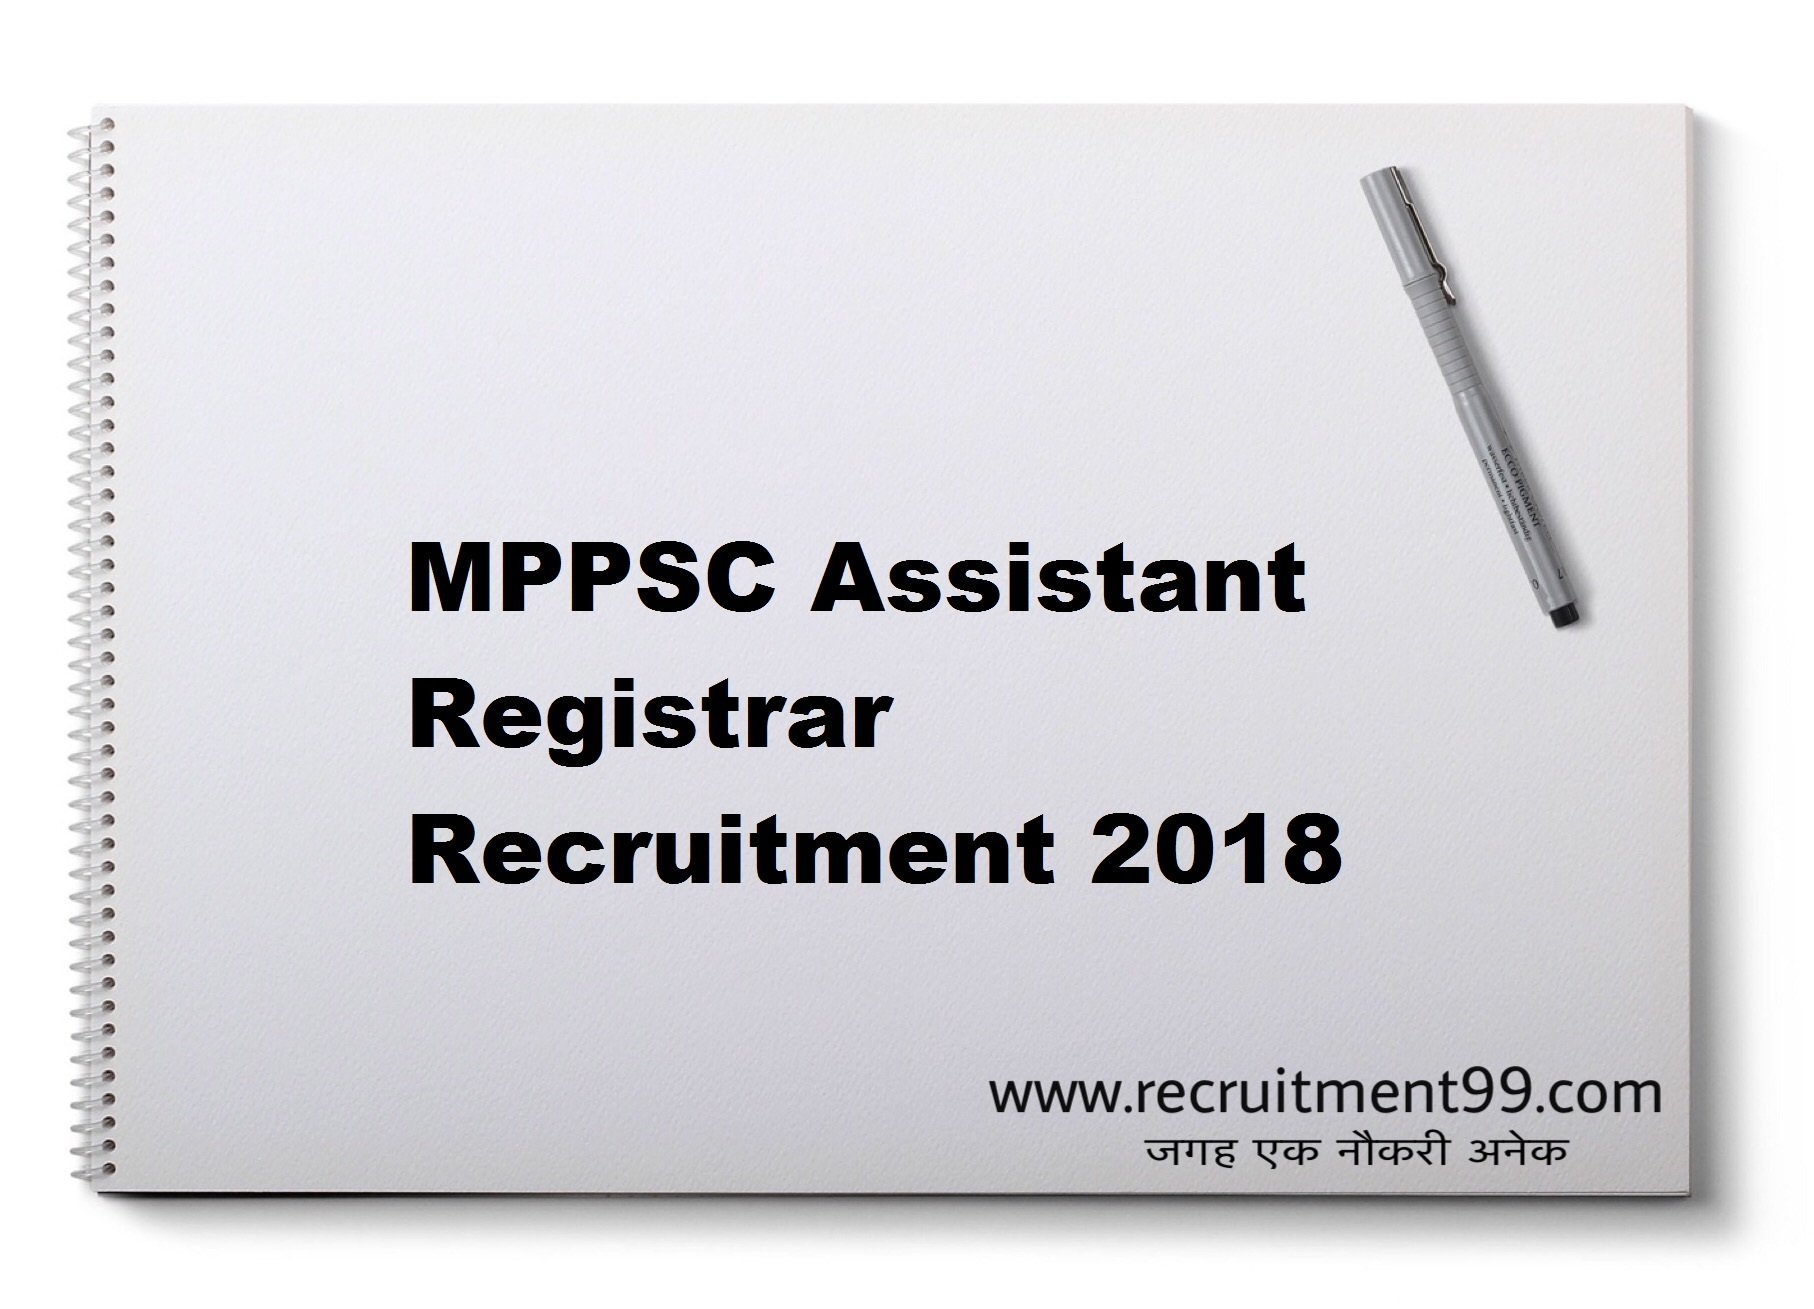 MPPSC Assistant Registrar Recruitment Admit Card Result 2018